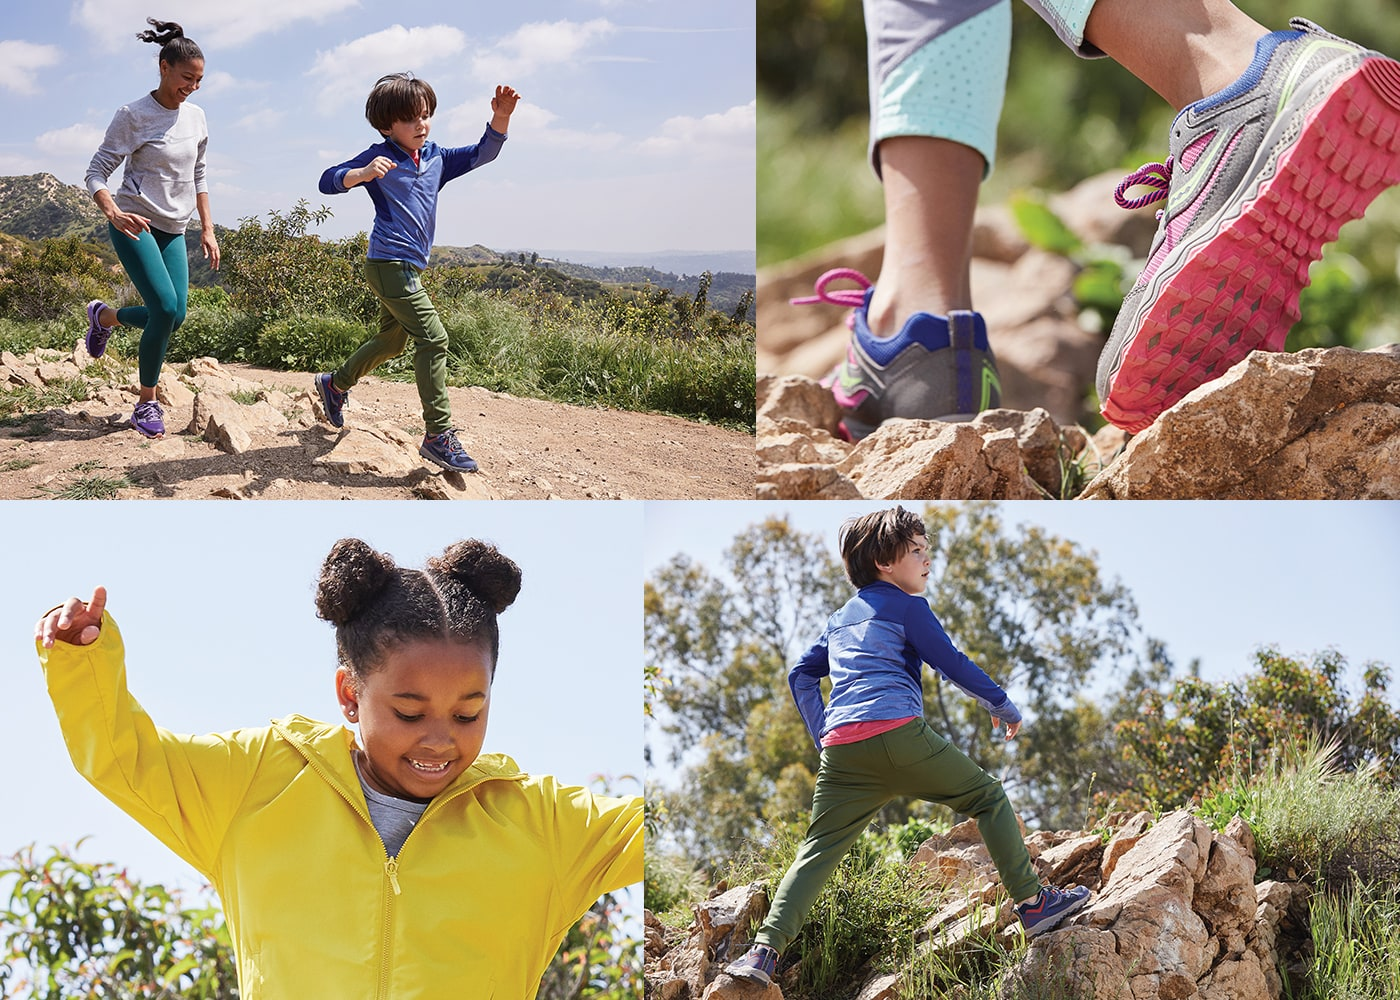 Gallery of kids wearing the Saucony Peregrine 10